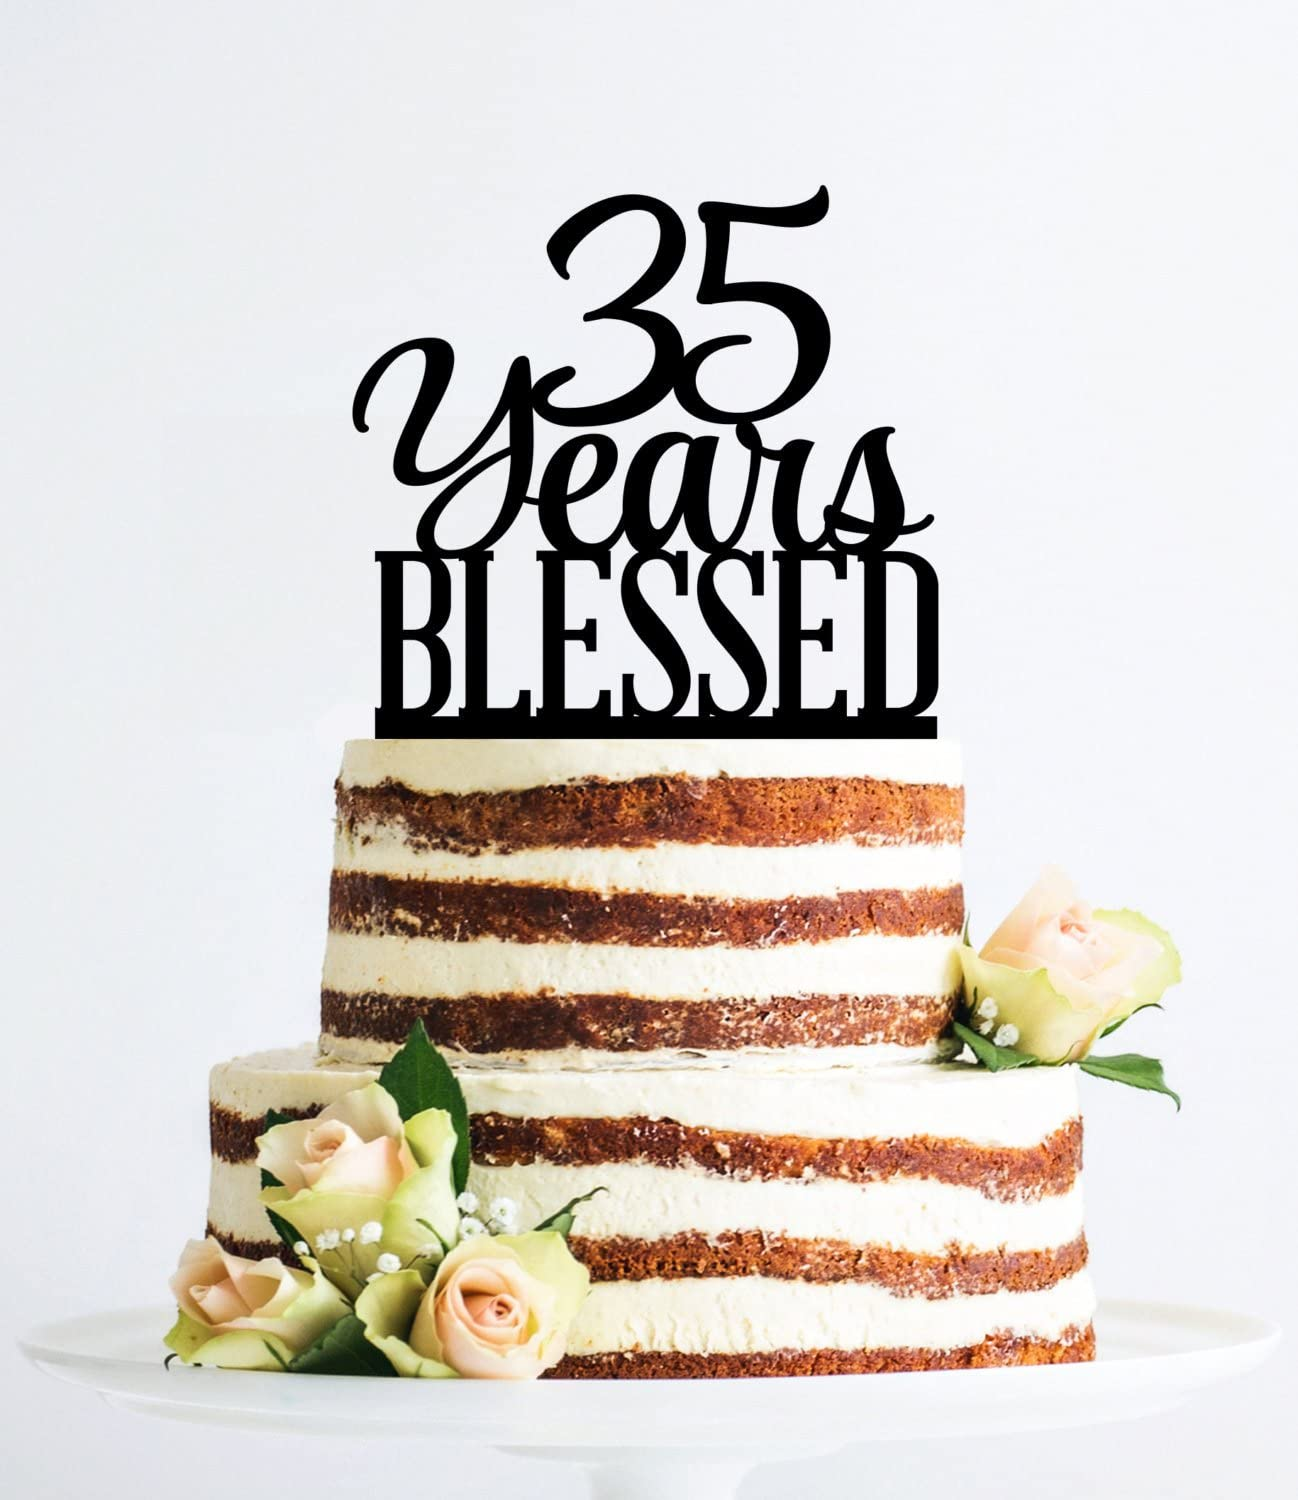 Fabulous 35 Years Blessed Cake Topper For Women And Men Classy 35Th Personalised Birthday Cards Sponlily Jamesorg